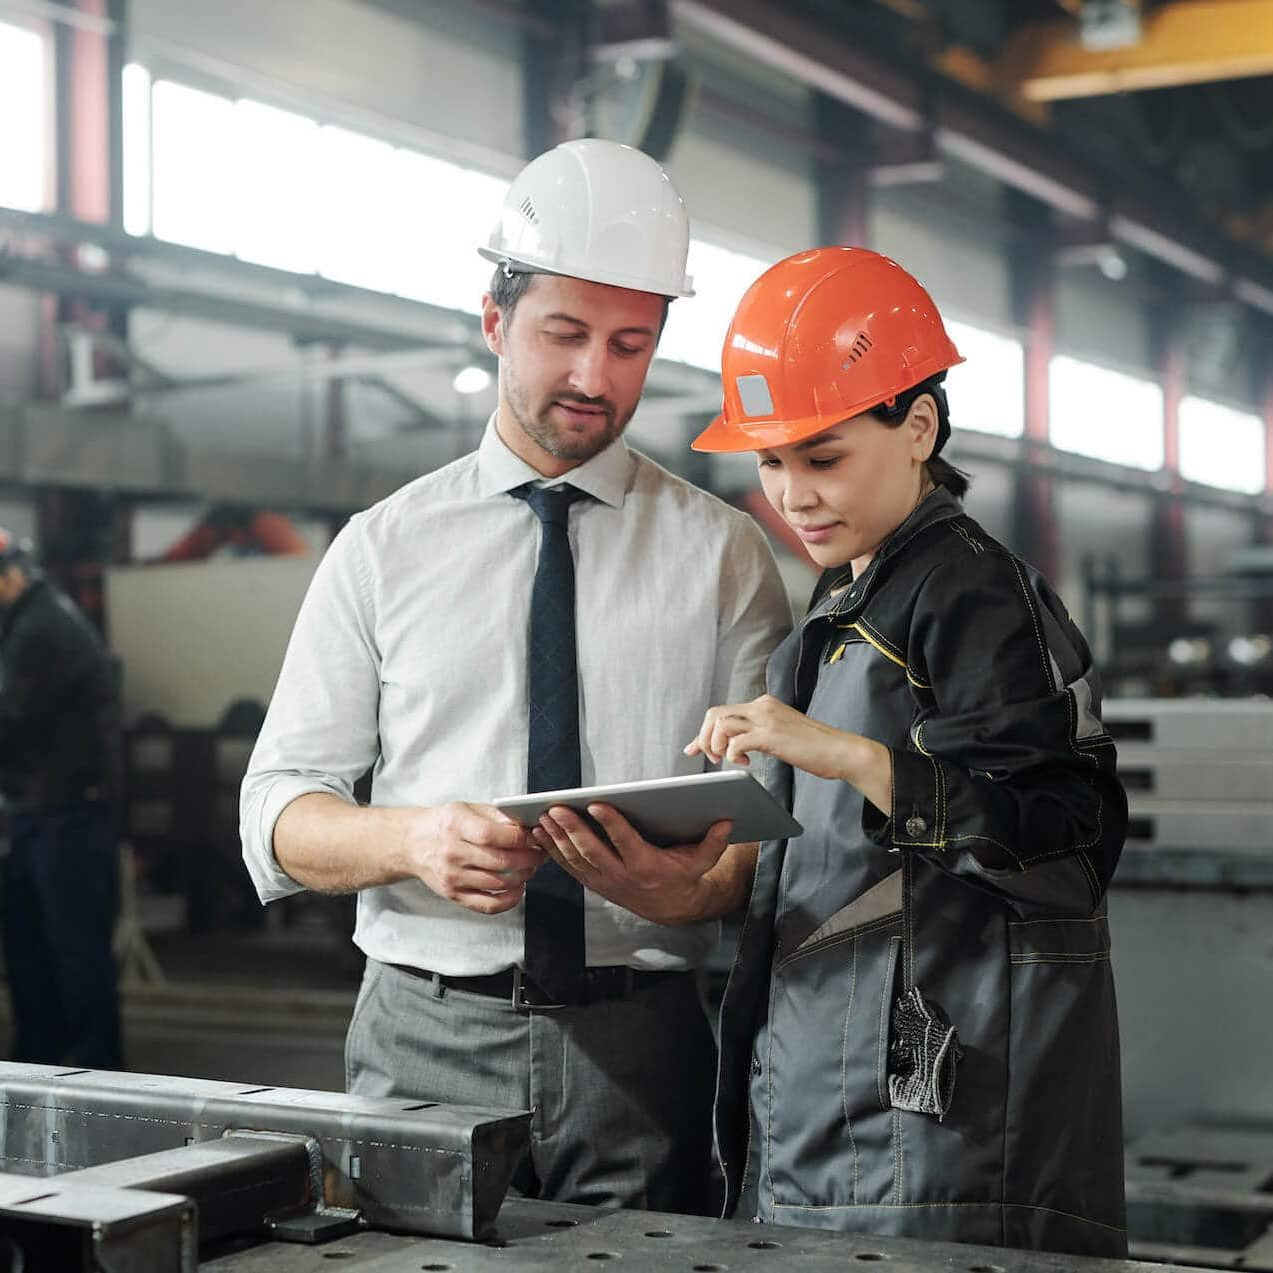 asian-metalworking-specialist-discussing-technical-sketch-with-engineer-while-they-using-engineering-app-tablet